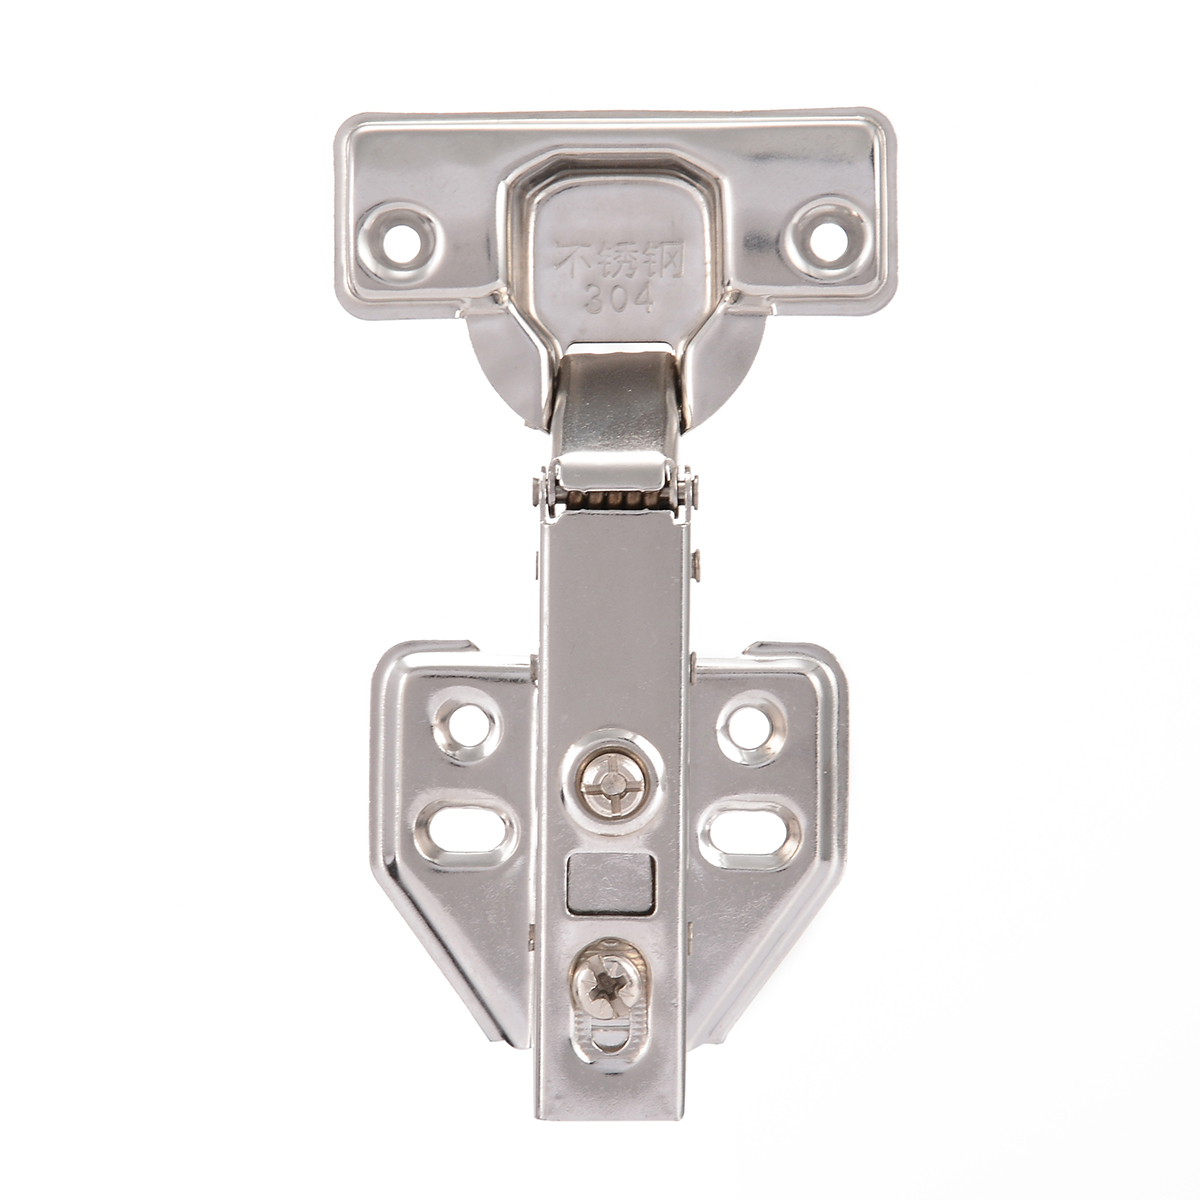 Safety Stainless Steel Door Hydraulic Hinges Damper Buffer Soft Close For Cabinet Cupboard Furniture Hardware